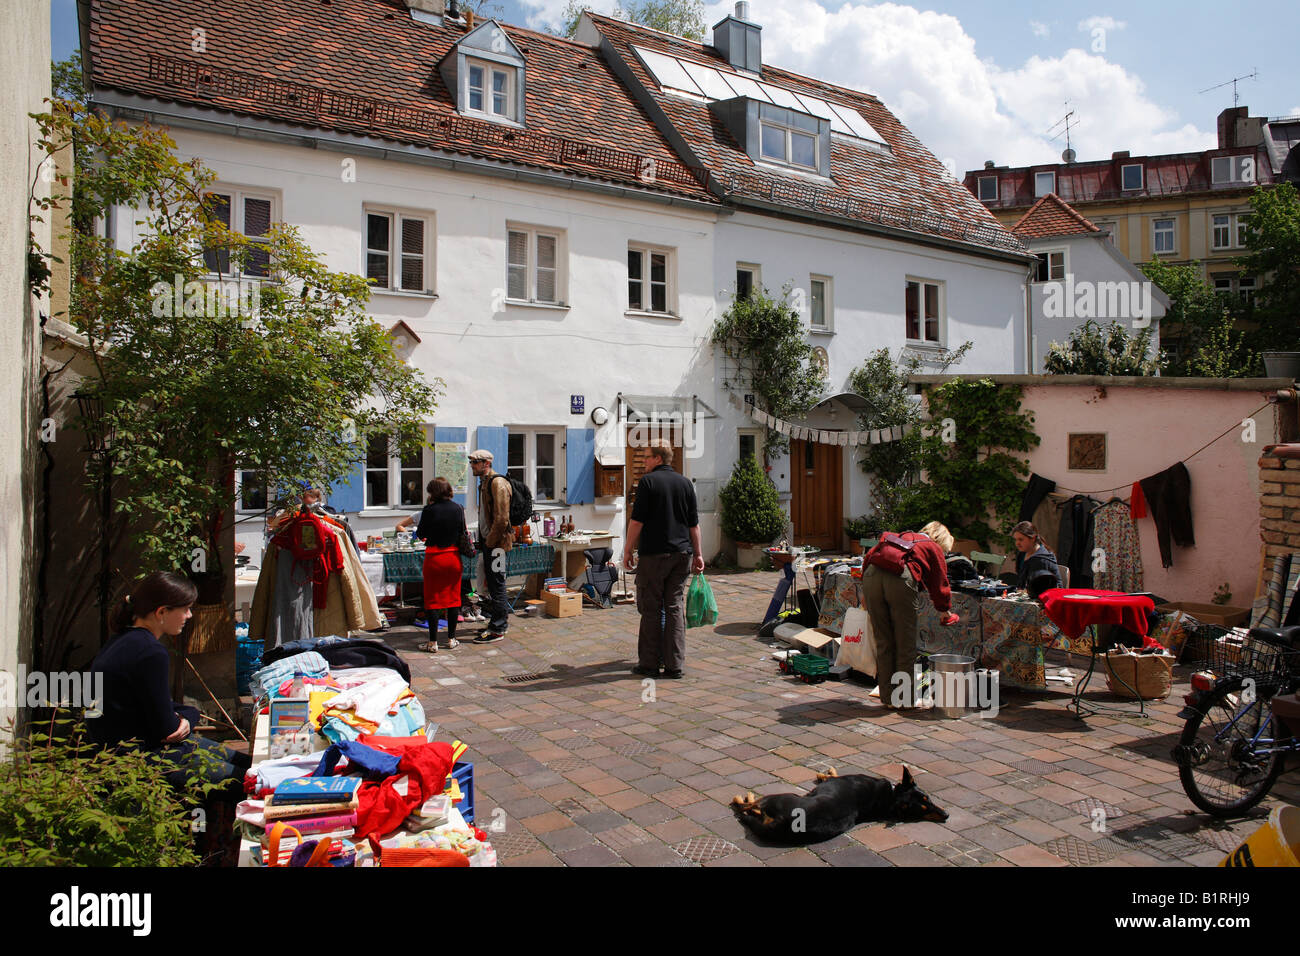 Back-yard fleamarket, Steinstrasse 48, Munich-Haidhausen, Upper Bavaria, Germany, Europe - Stock Image